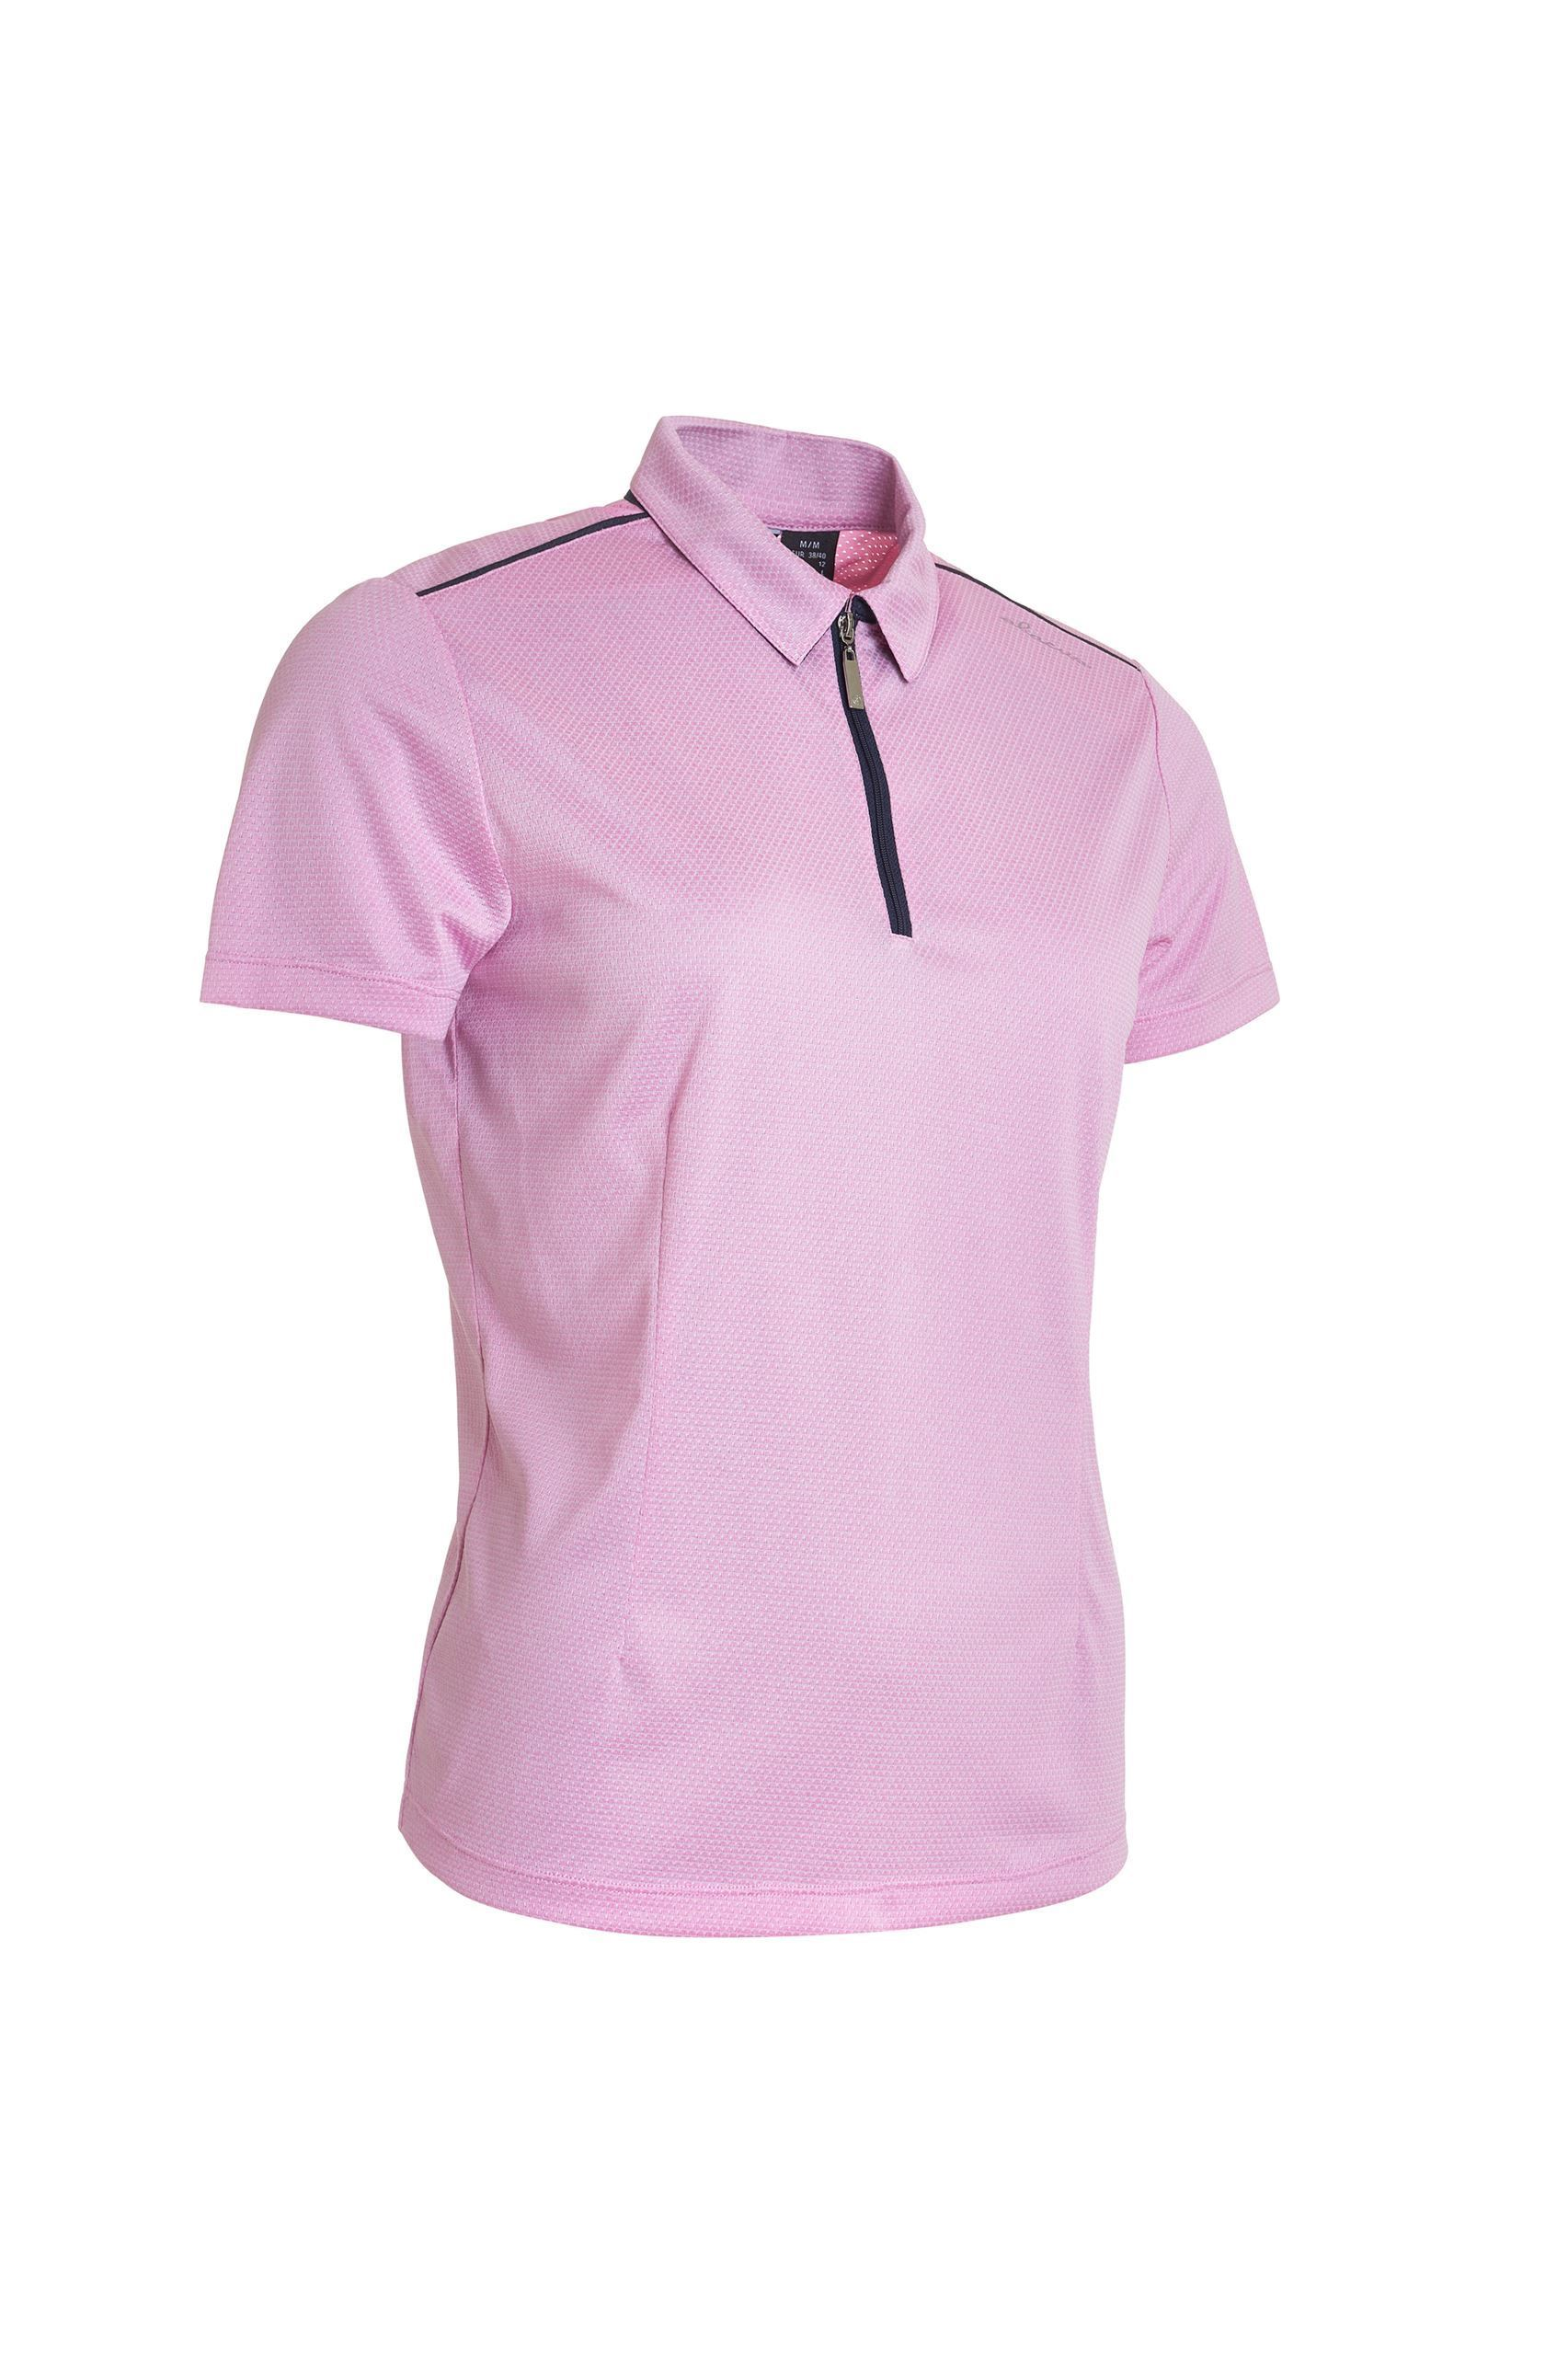 Picture of Abacus Ladies Vilna 1/2 Zip Polo Shirt - Peony 390